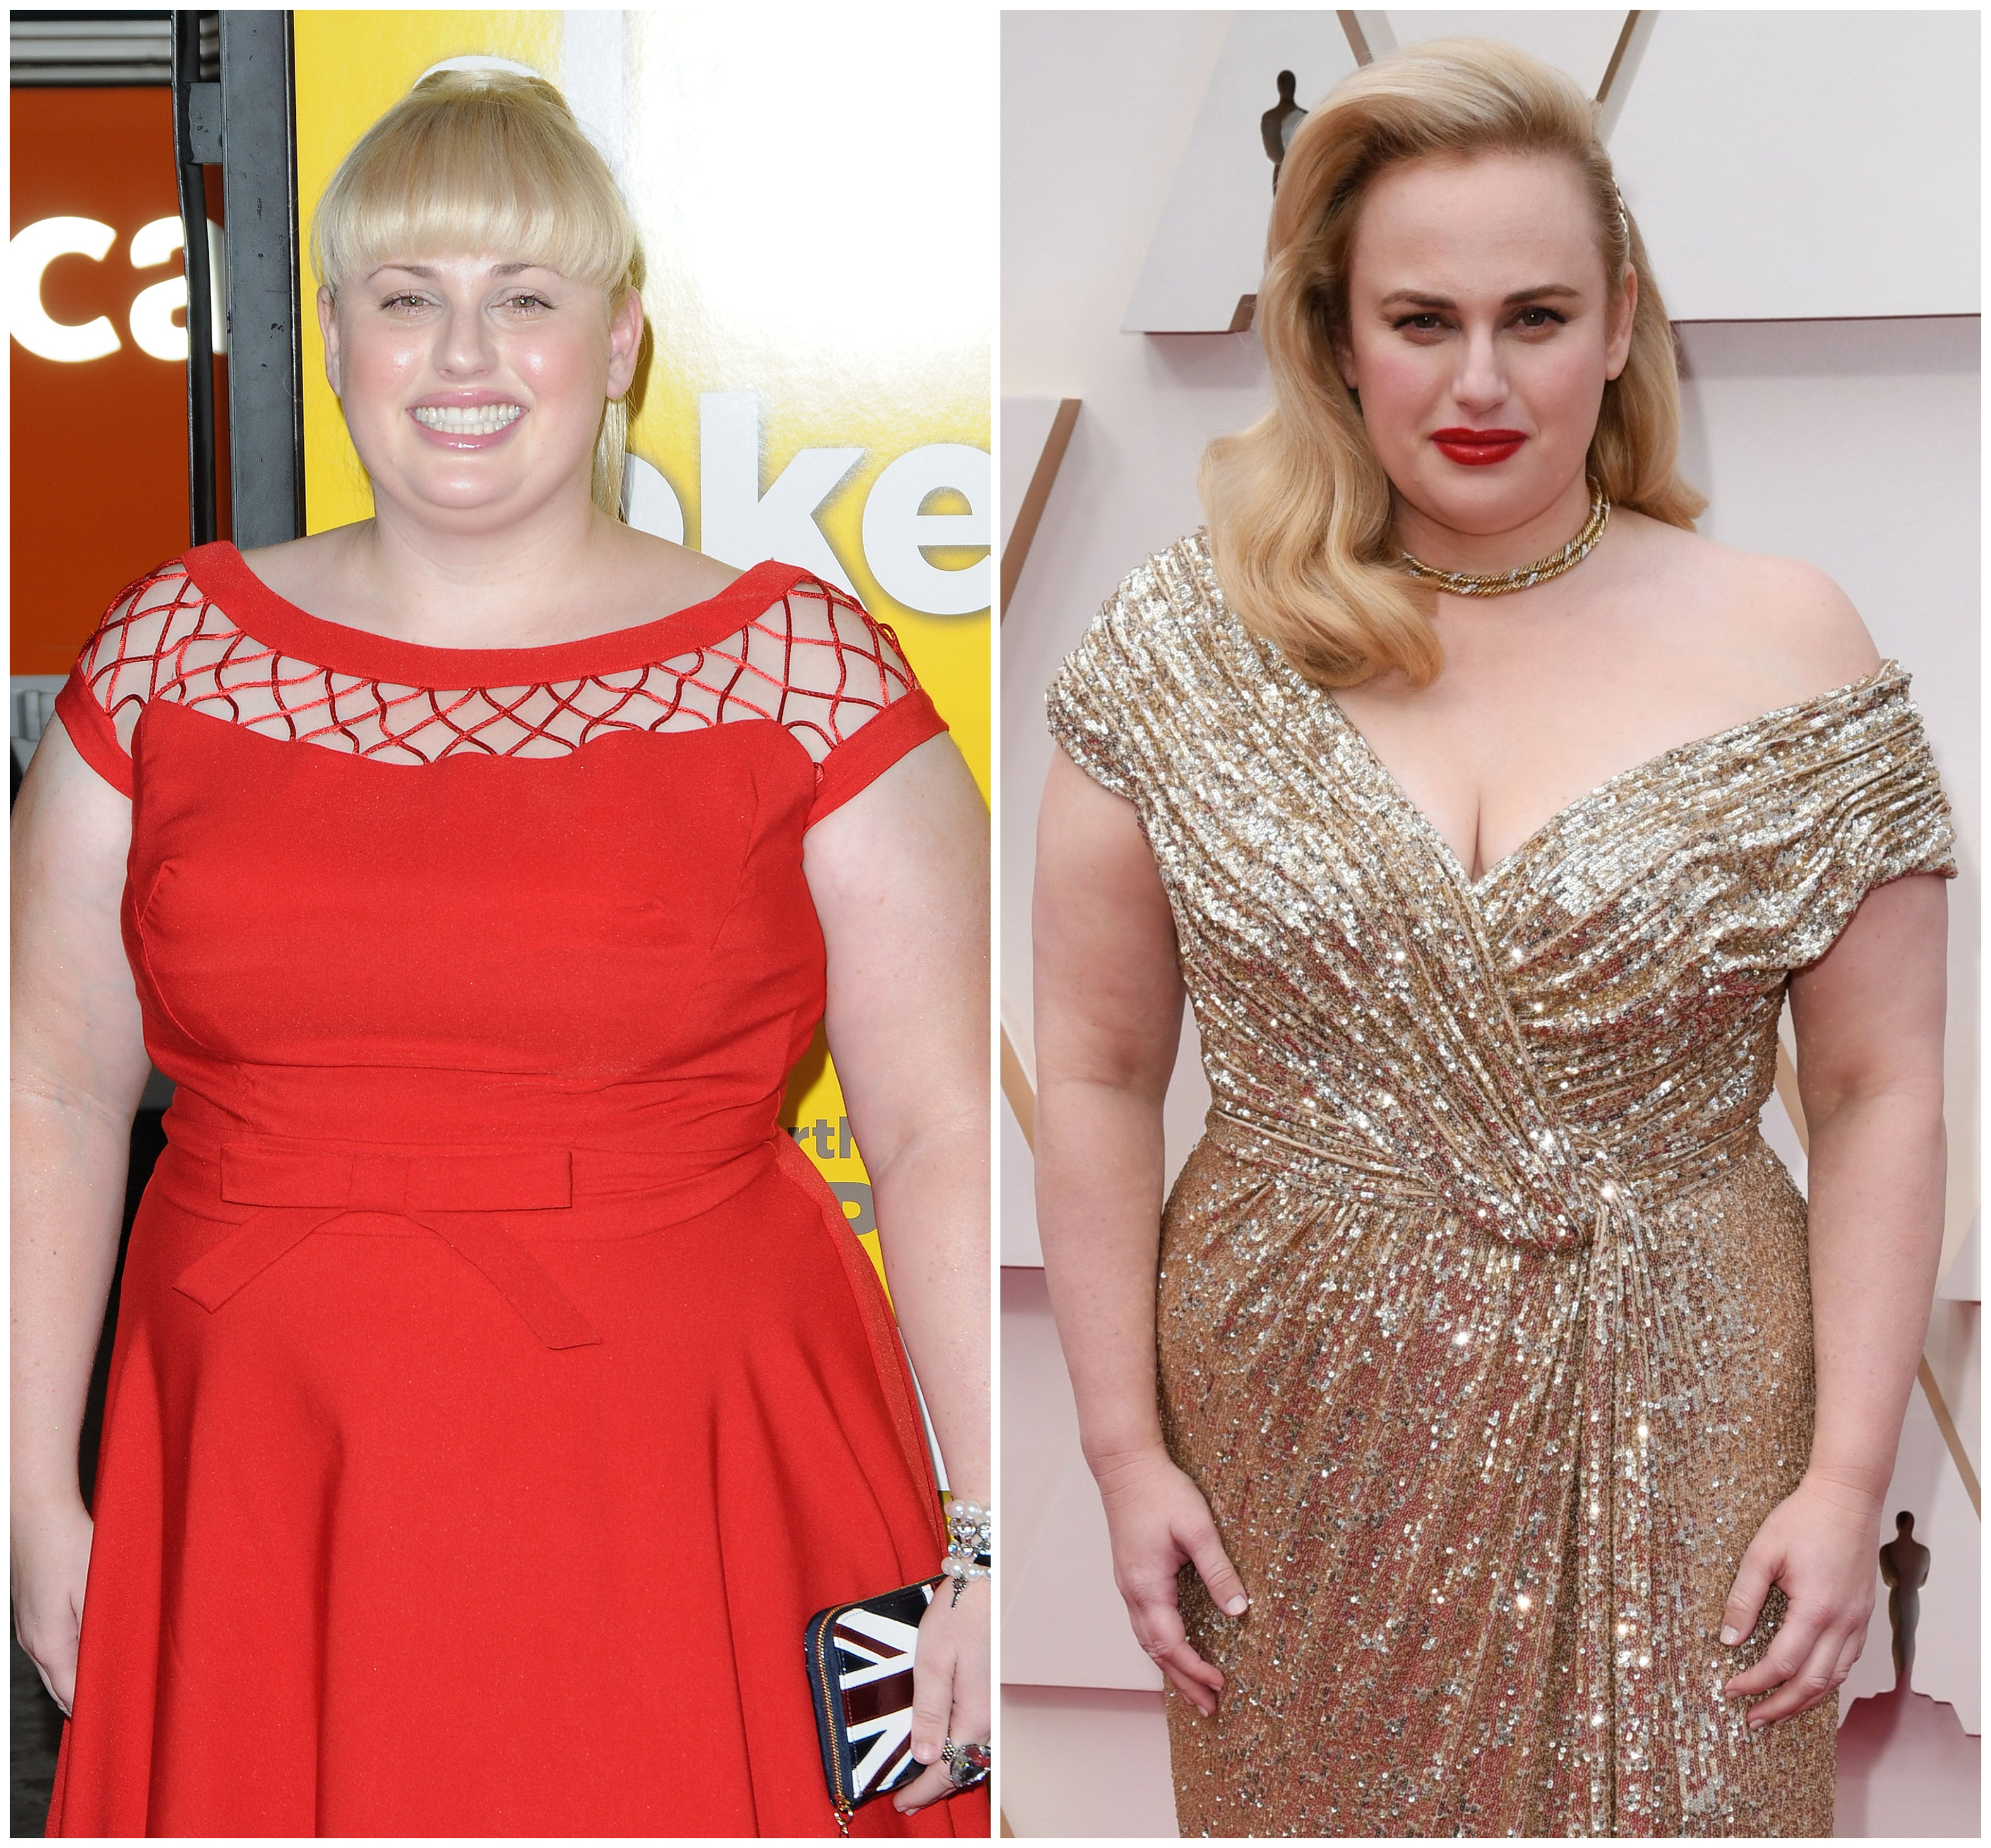 Rebel Wilson Weight Loss Before And After Photos Of Her Transformation